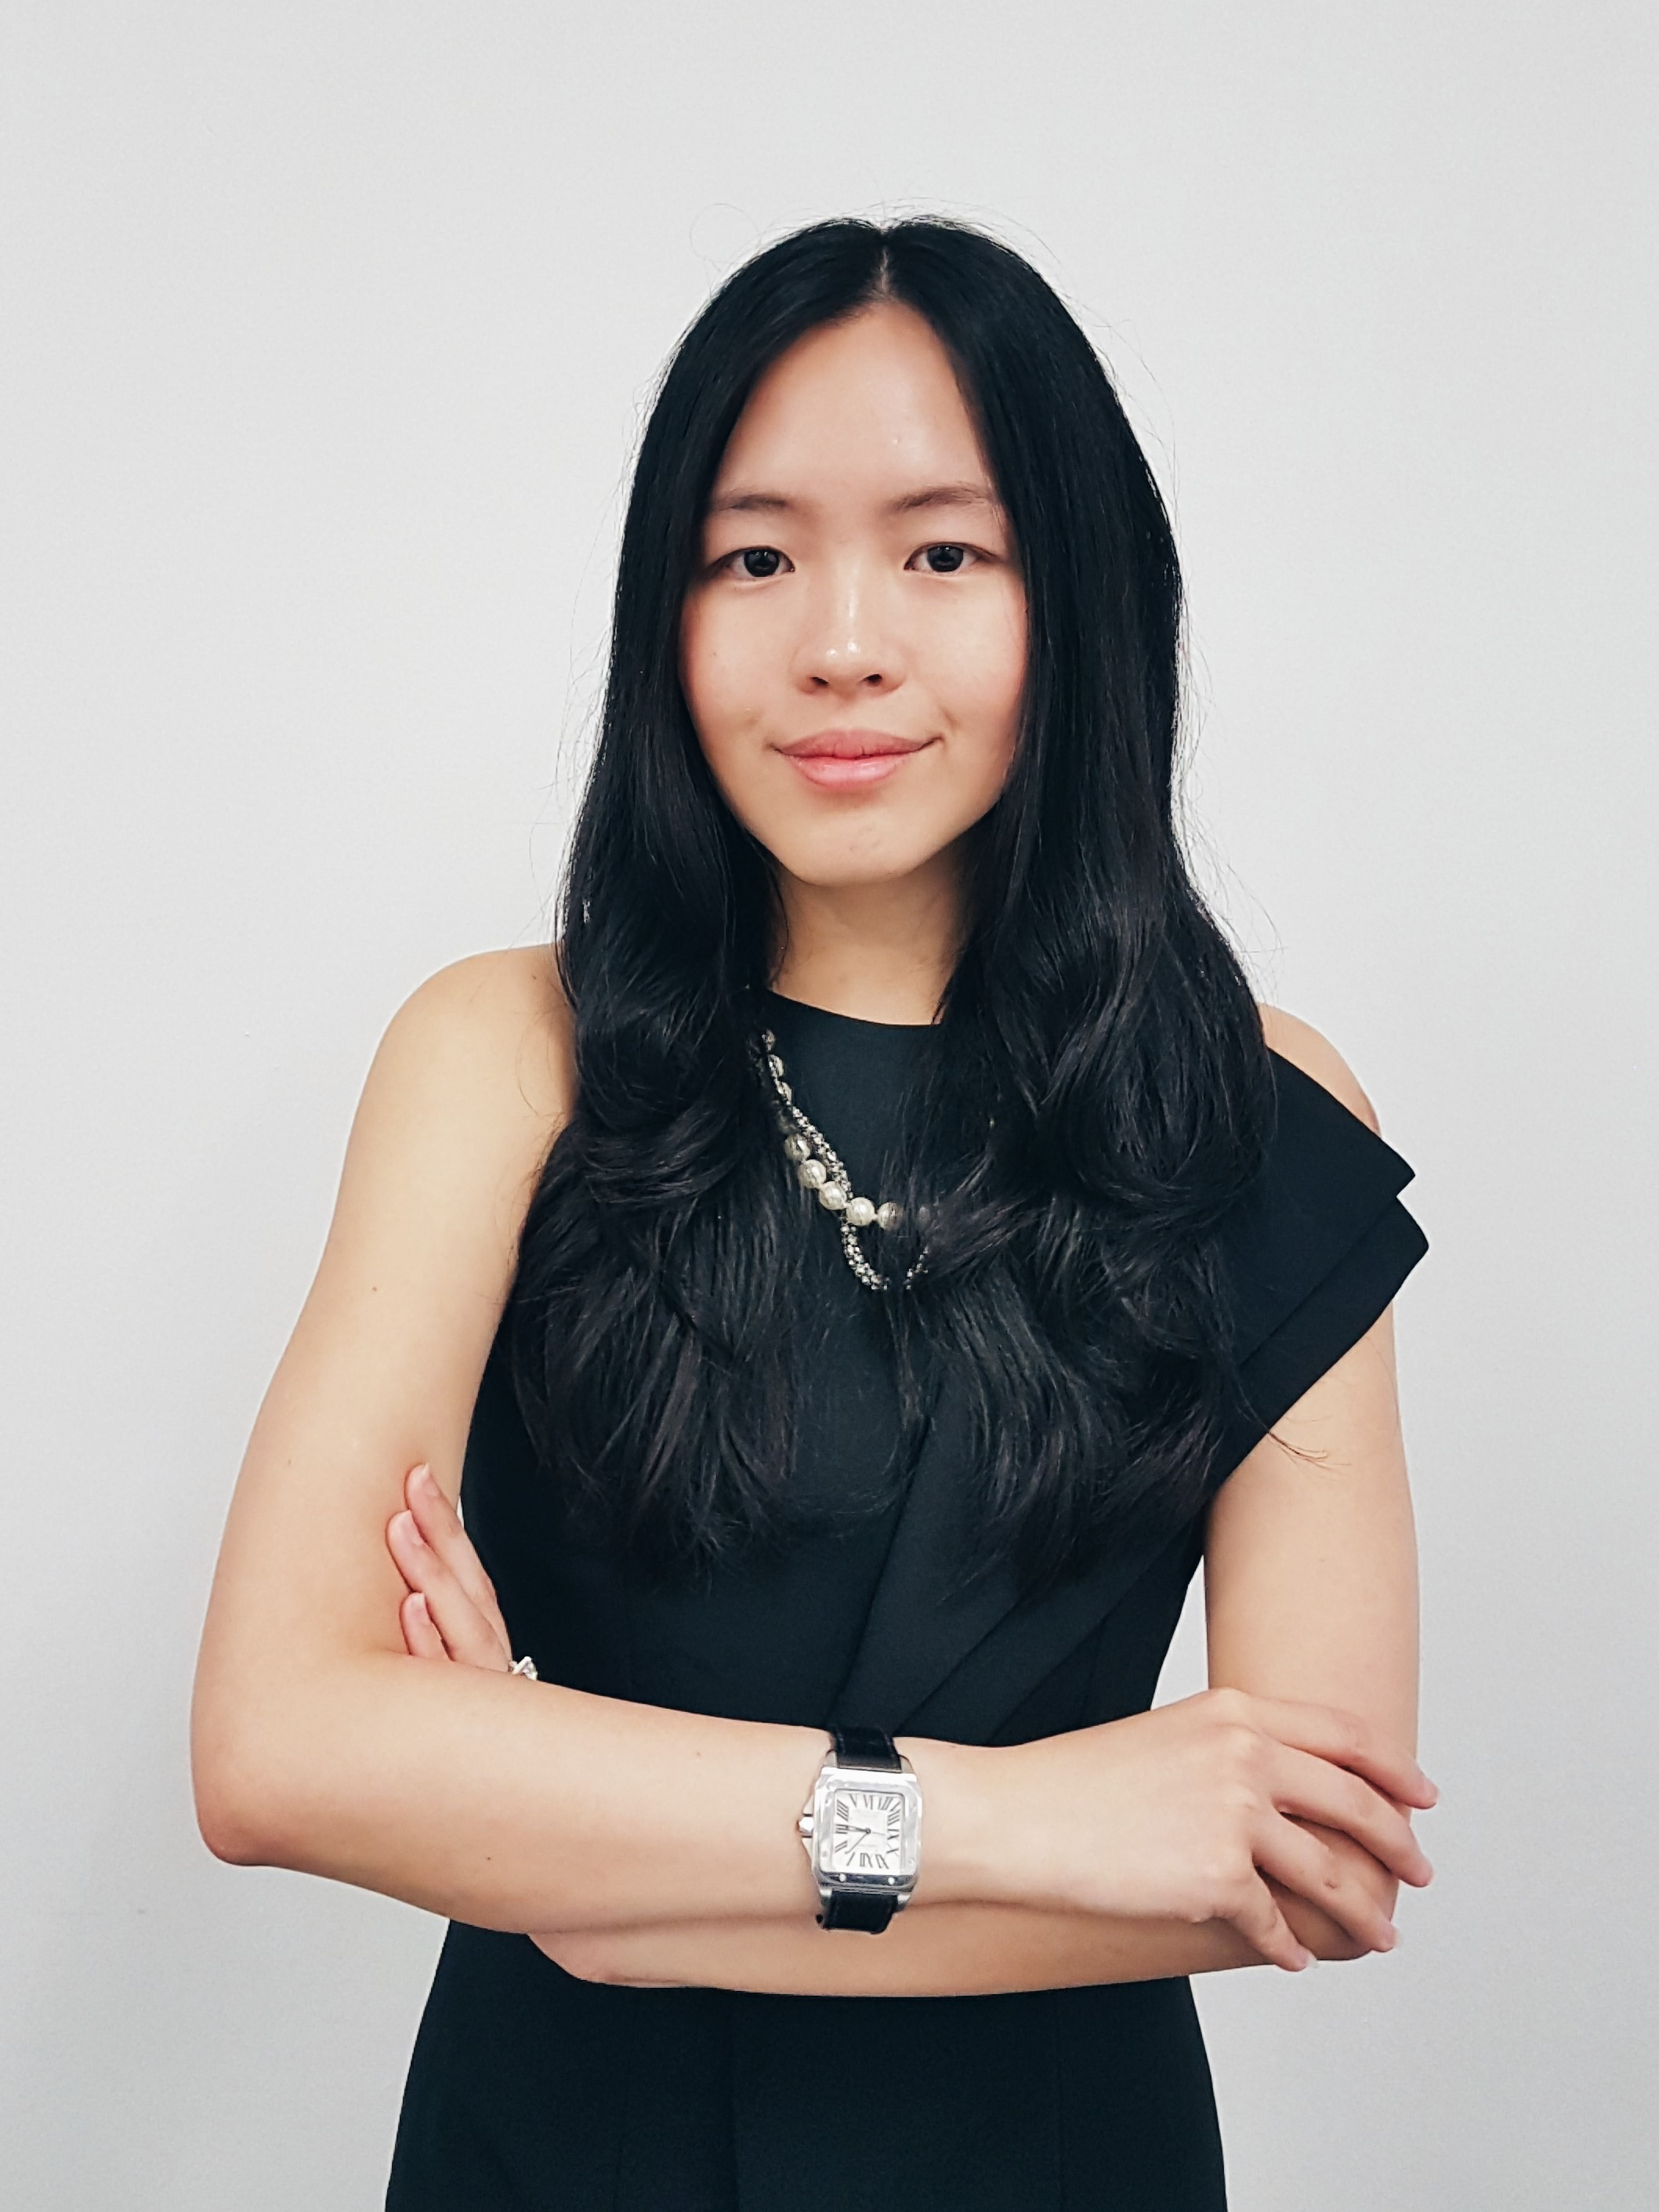 Ms Yuet Whey Siah, CEO and Founder of DREA